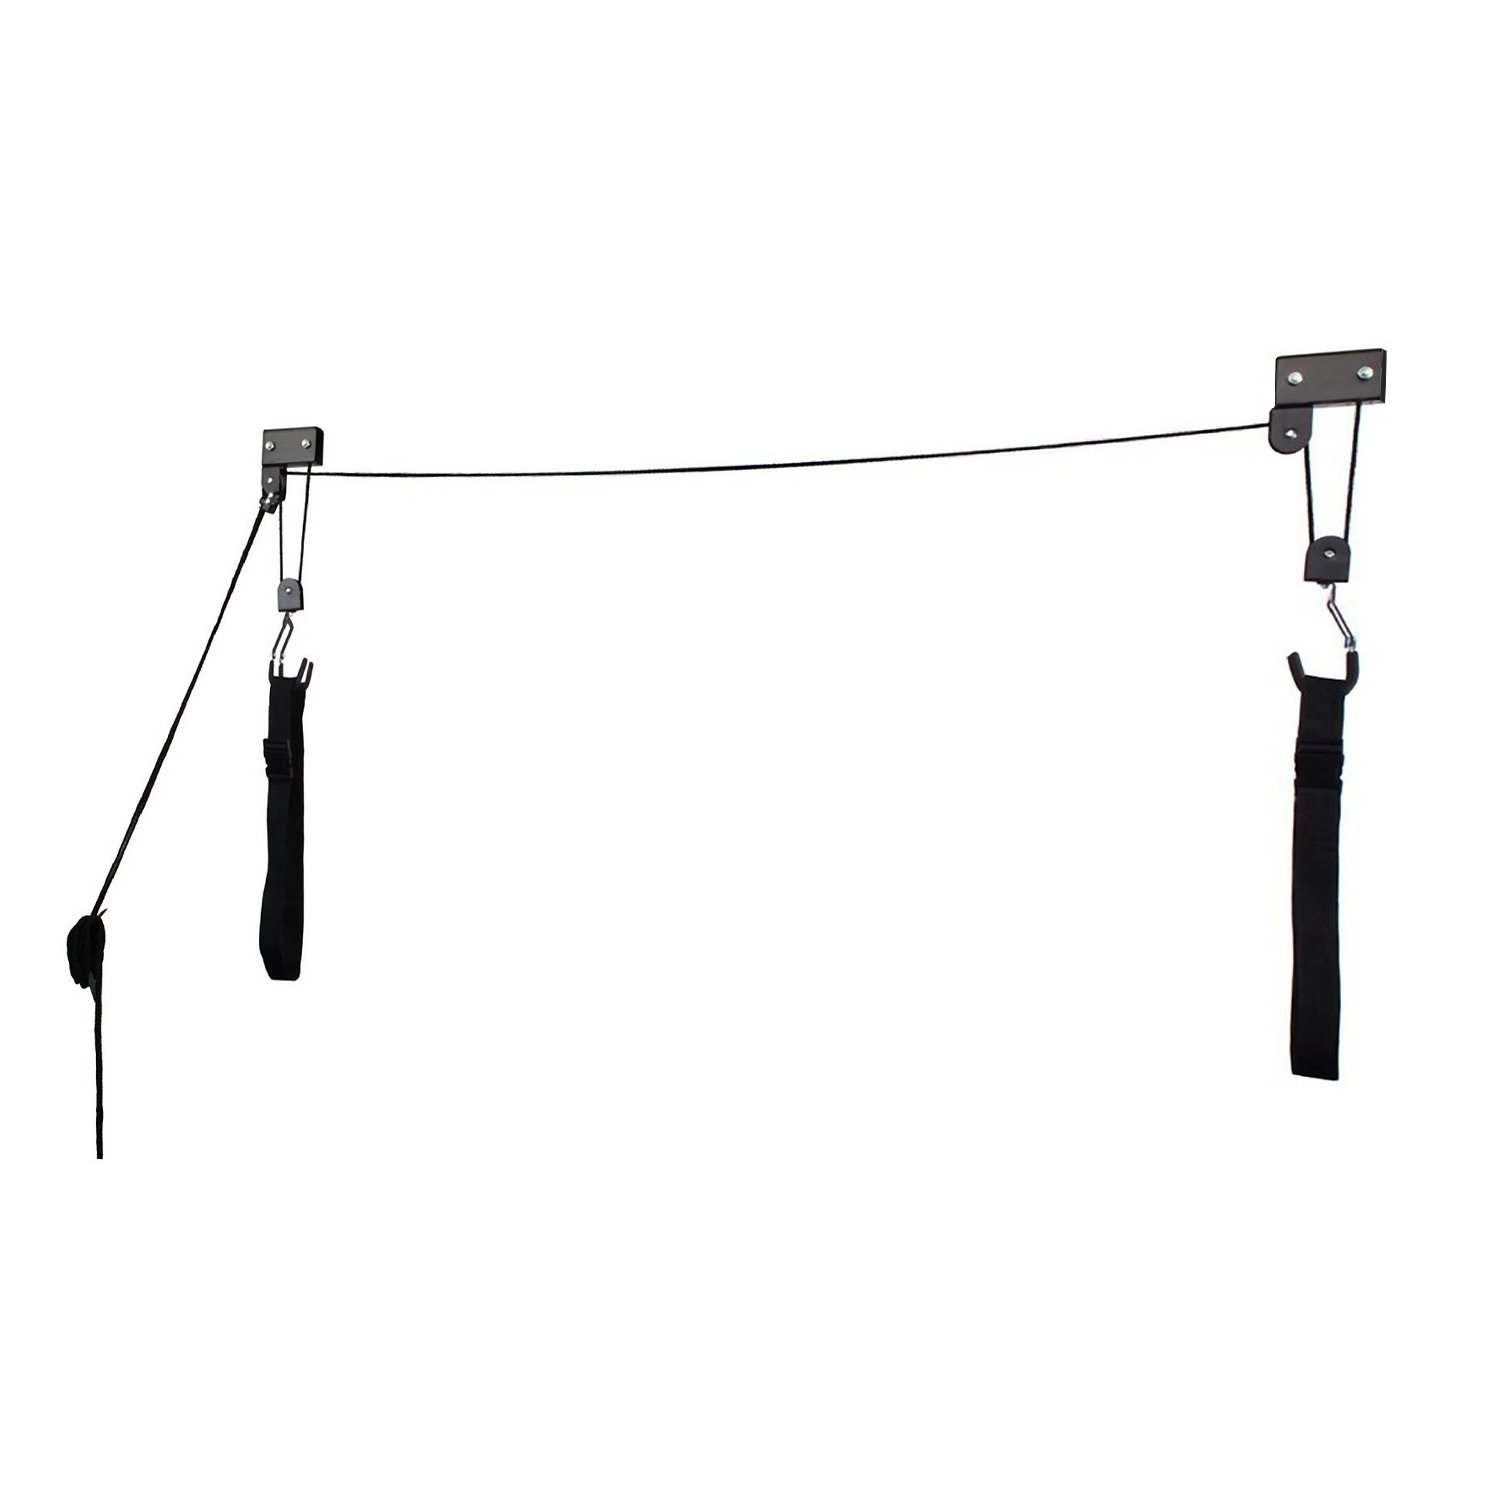 Proslat 66022 Heavy Duty Hoist (Pack of 2)